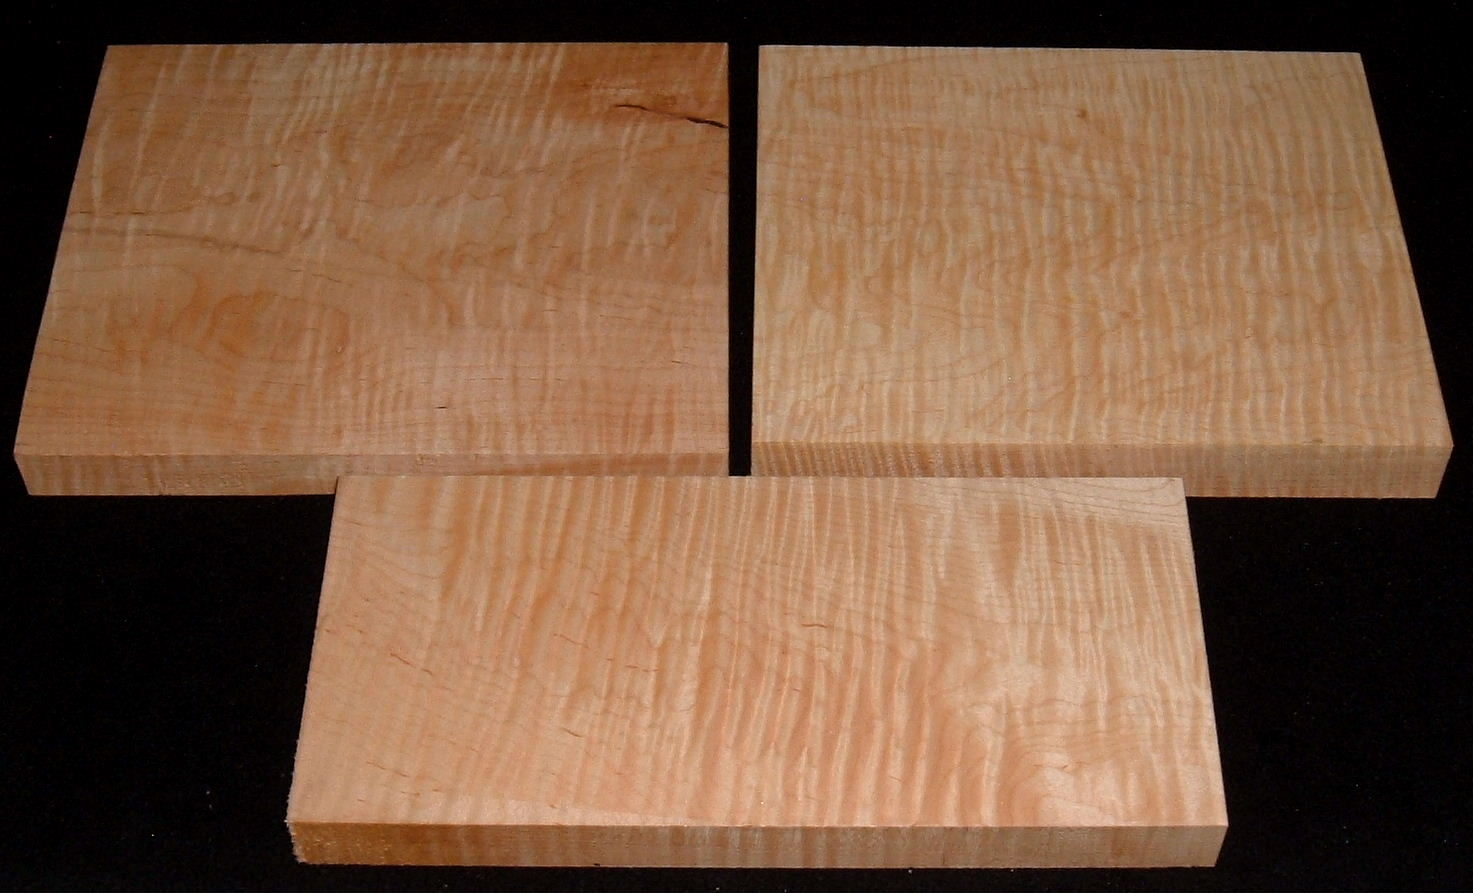 HP-2443, 5/4 Curly Tiger Soft Maple, Lumber Craft Board Hobby Pack